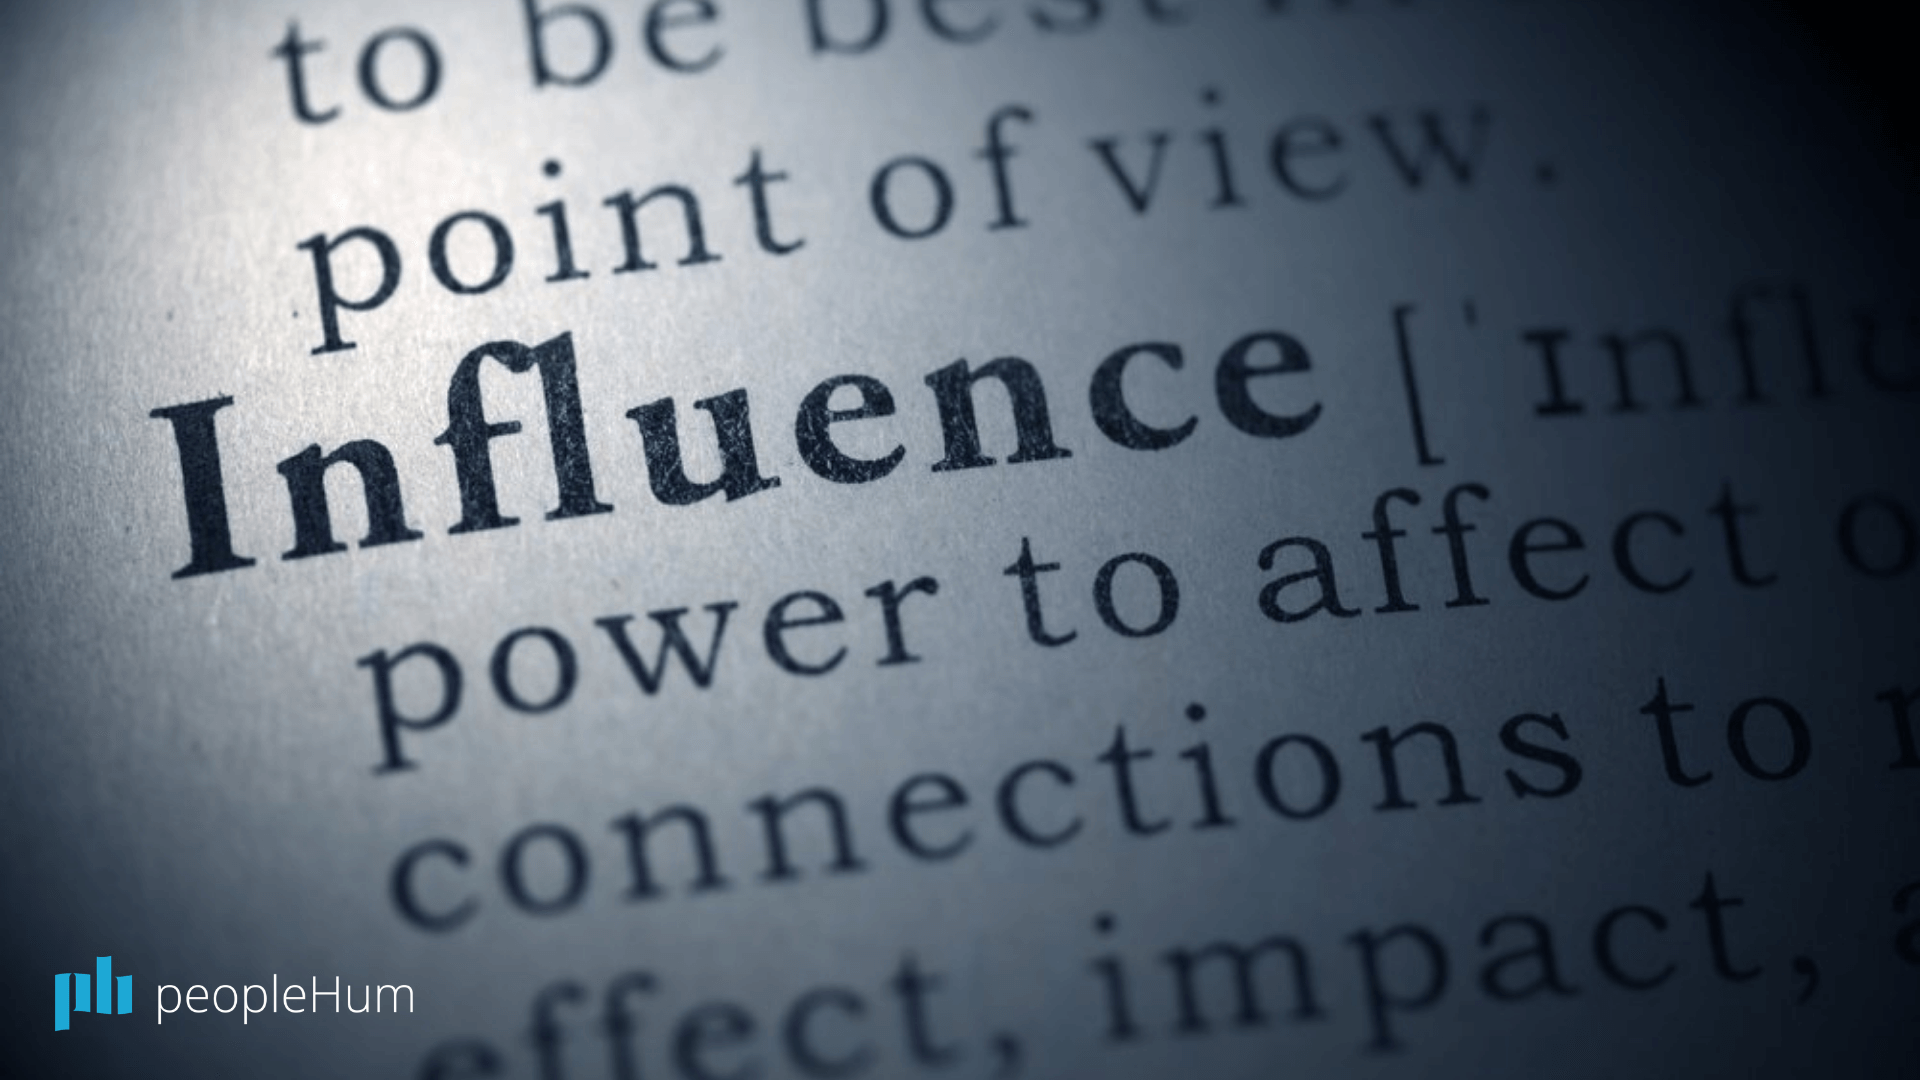 The three R's of influence